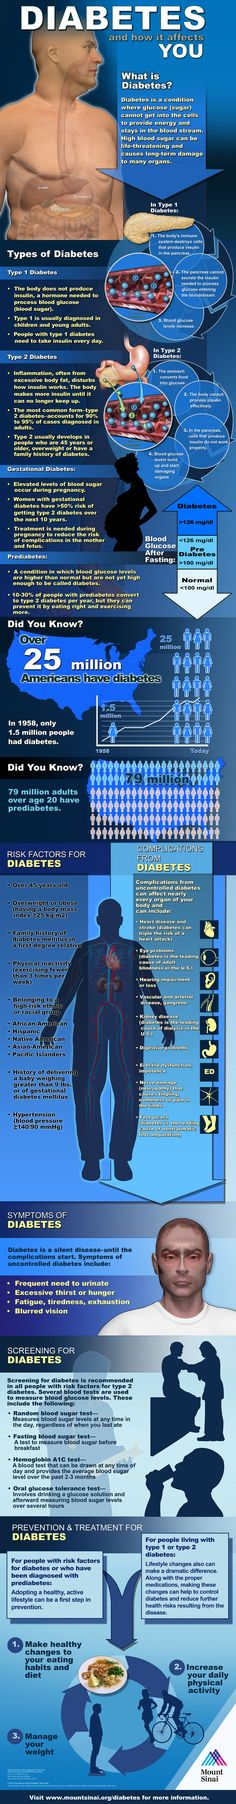 Diabetes And How It Affects You Infographic.